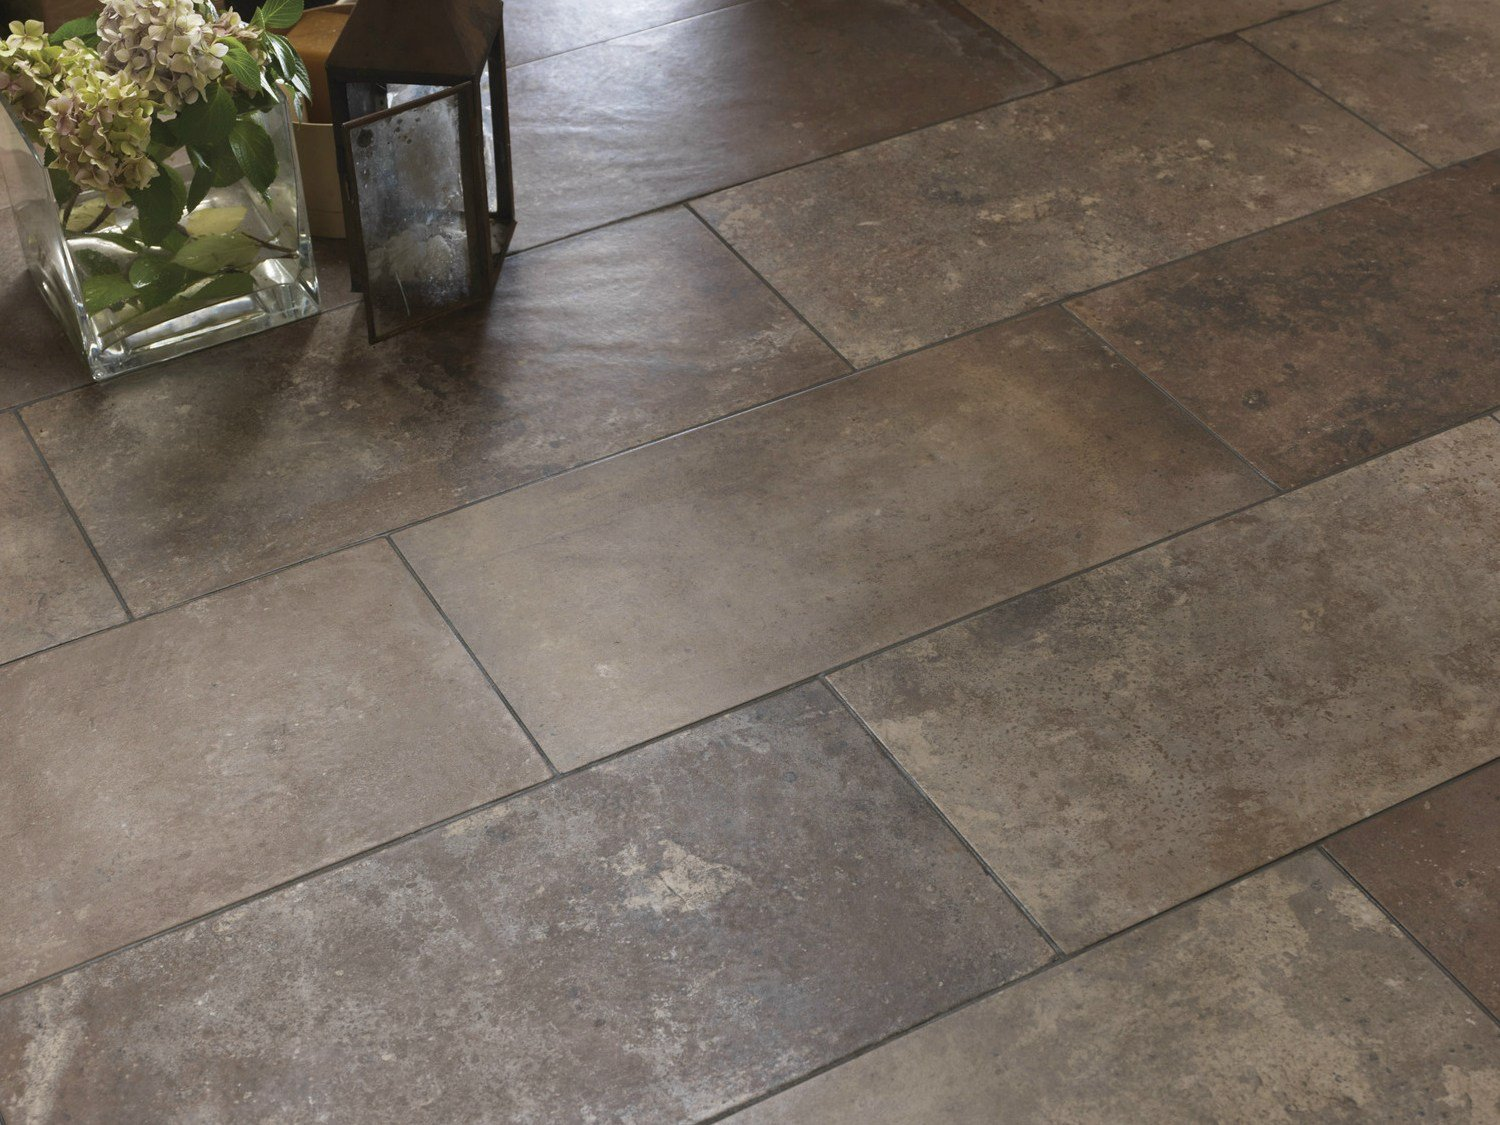 Indoor outdoor wall floor tiles london by ceramica rondine for Ceramicas para pisos exteriores precios